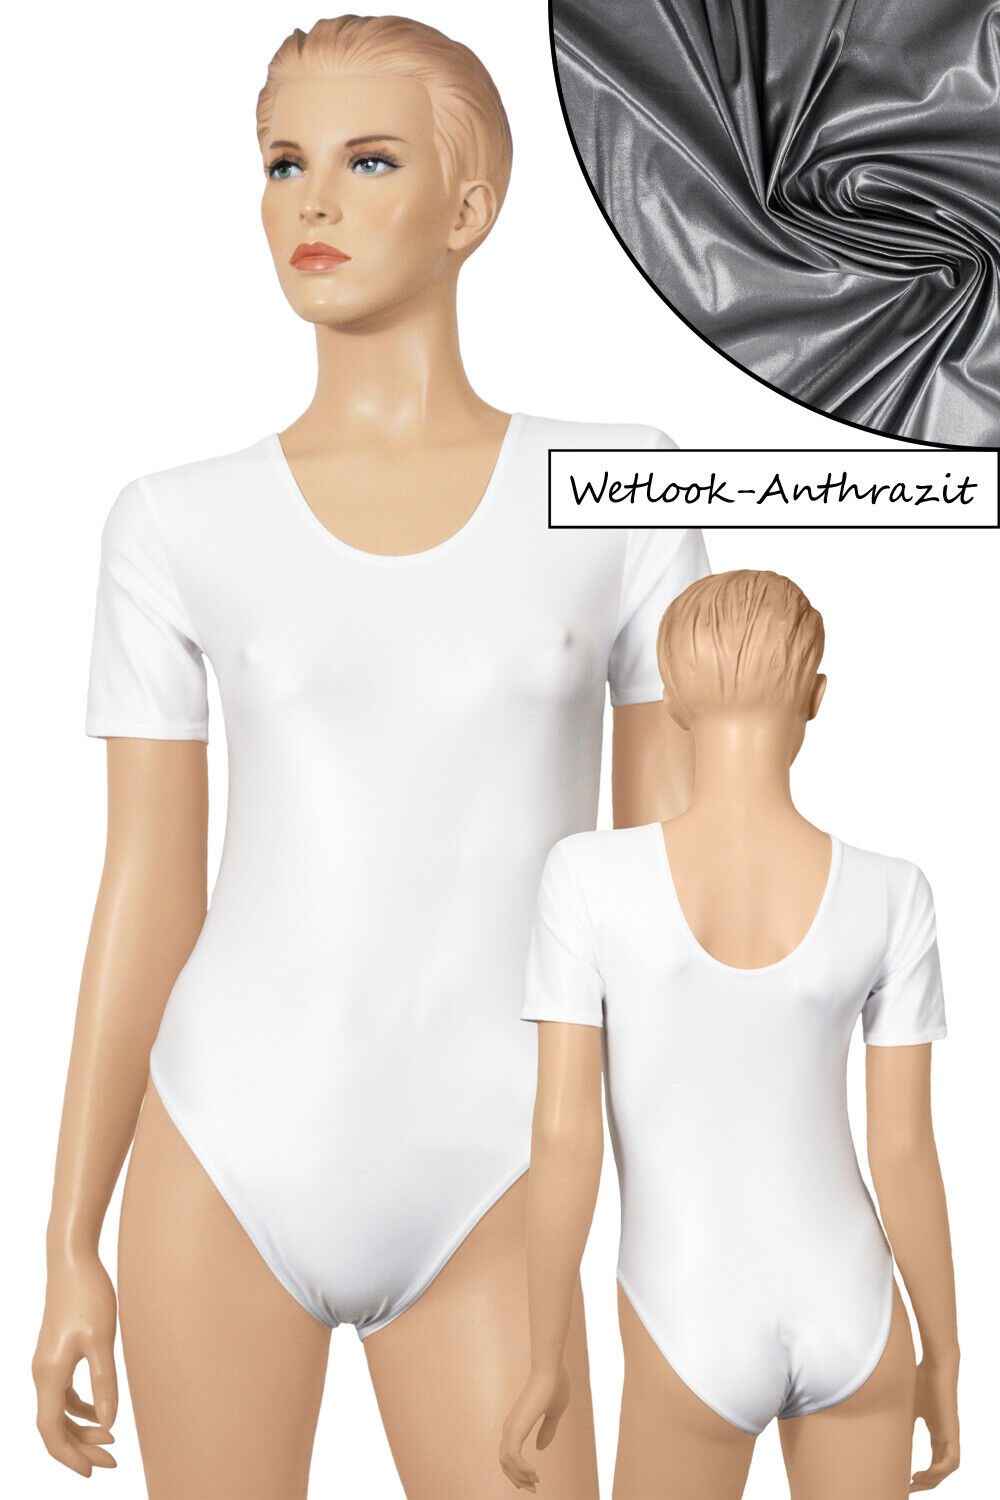 Damen Wetlook Body Rundhals kurze Ärmel stretch shiny Farben kurzarm-Body S-XL